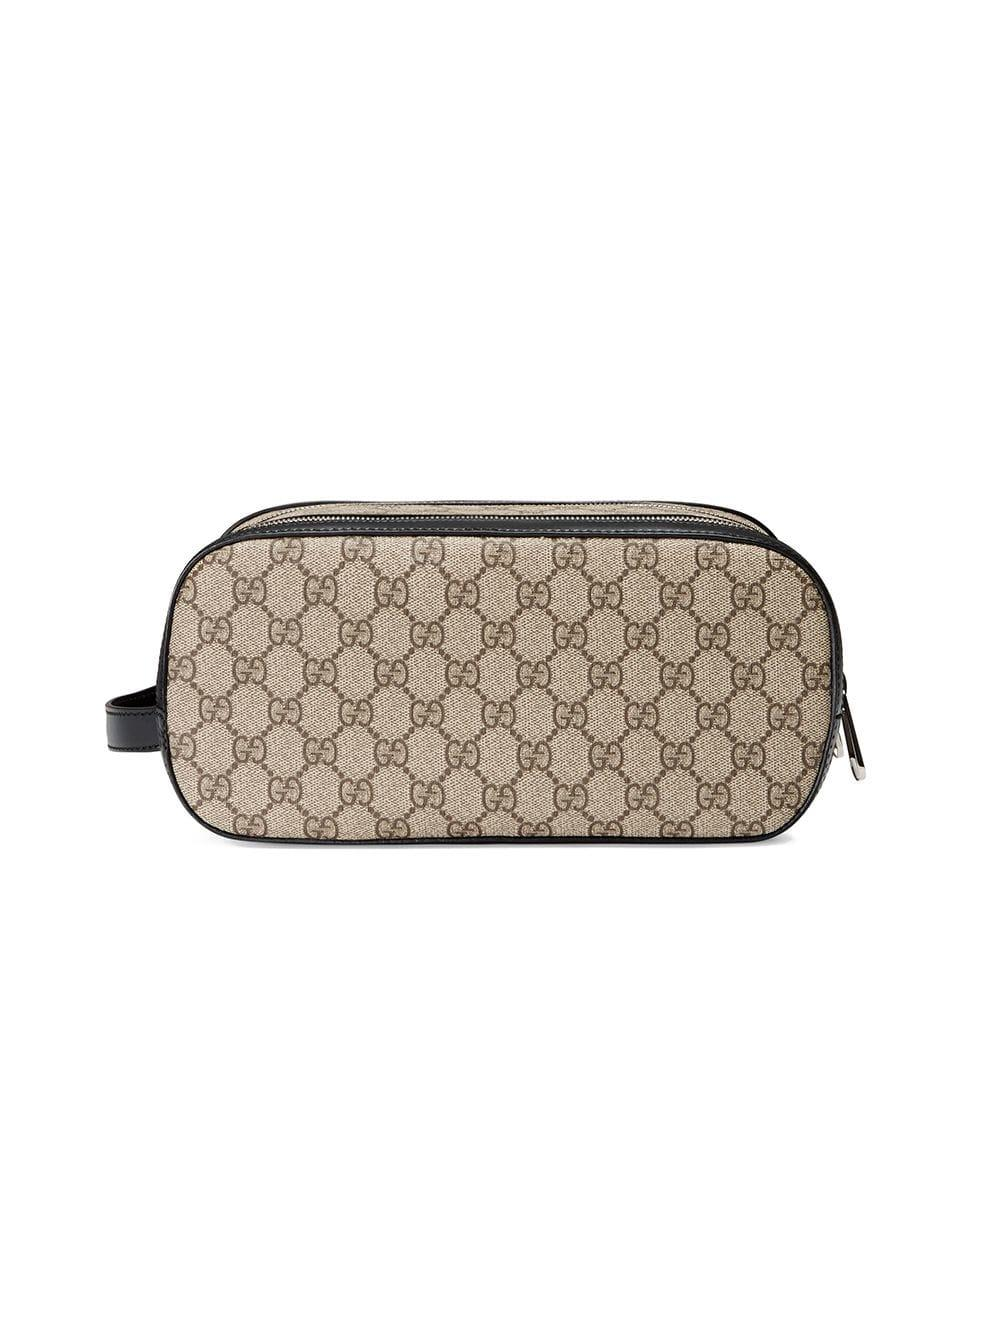 f7e32809f89e Gucci GG Supreme Toiletry Case for Men - Lyst